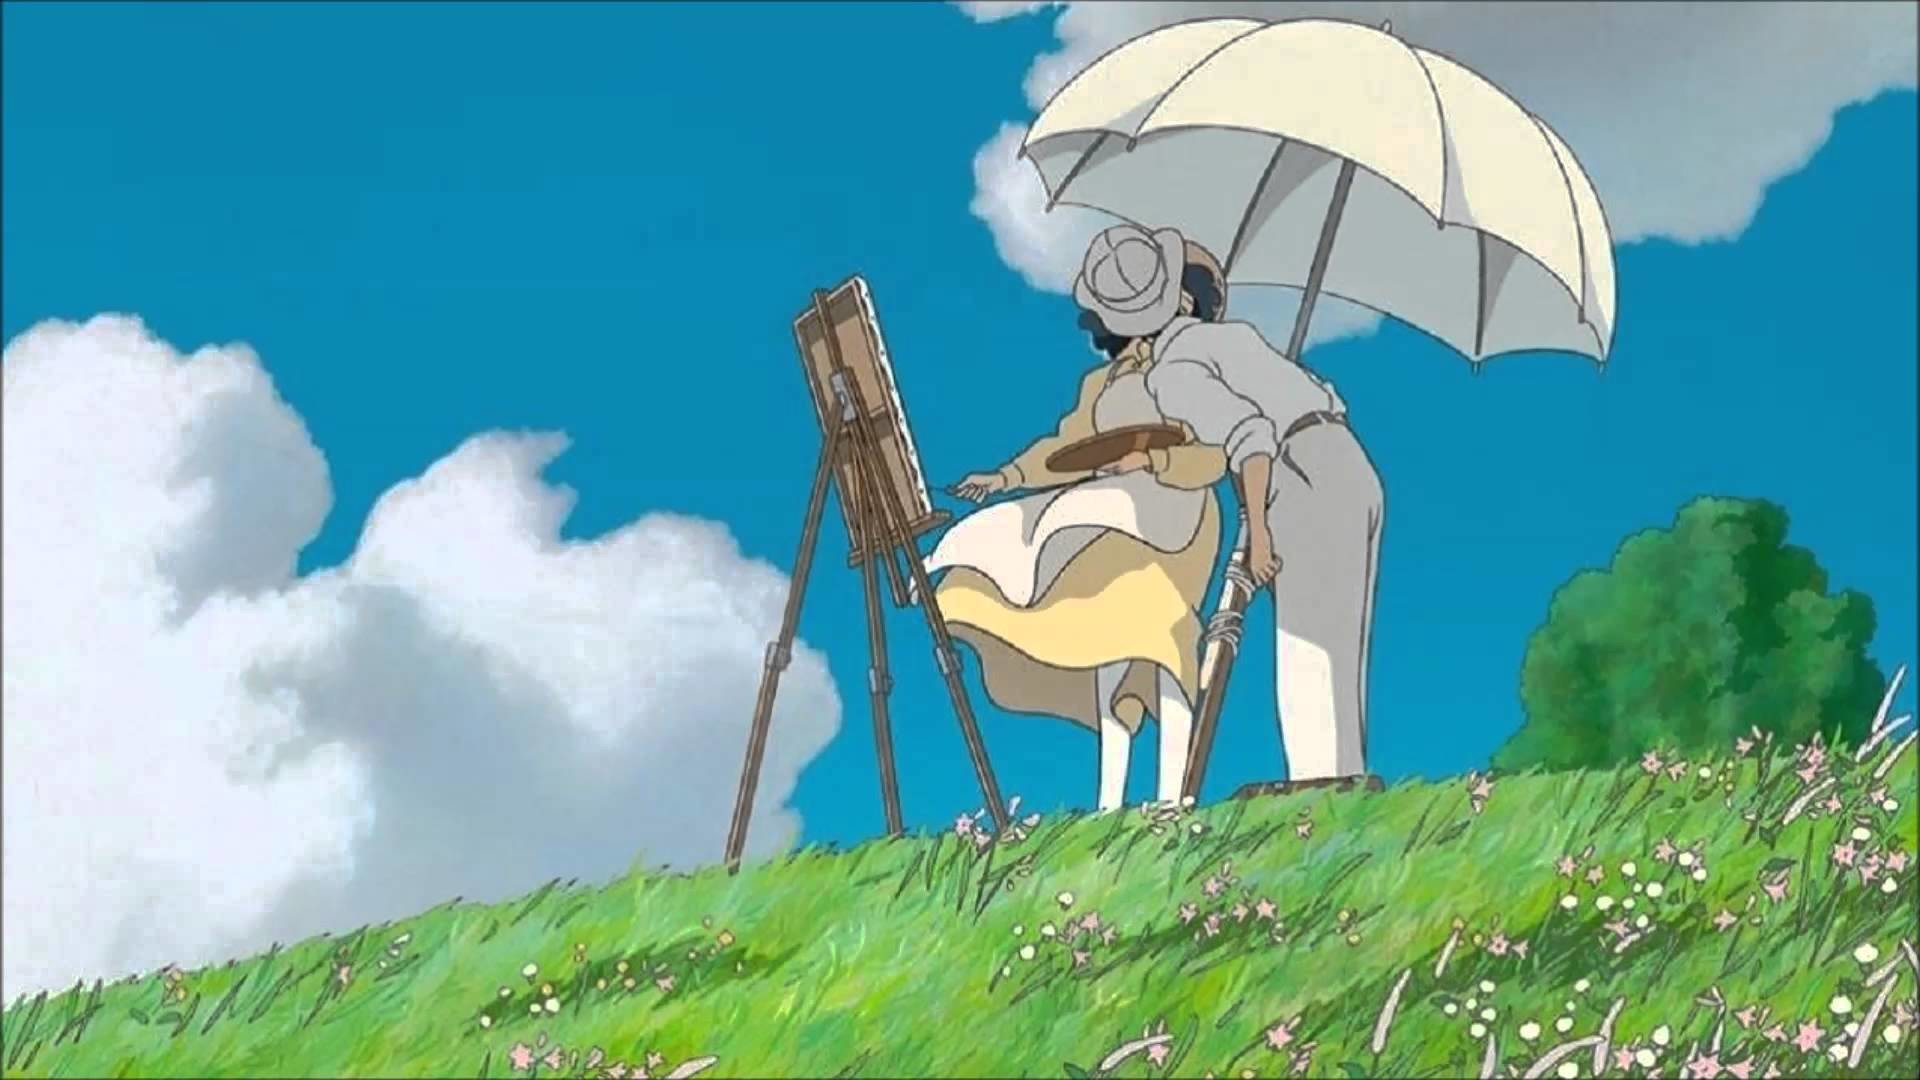 Studio Ghibli Wallpaper 1080p Posted By Christopher Tremblay